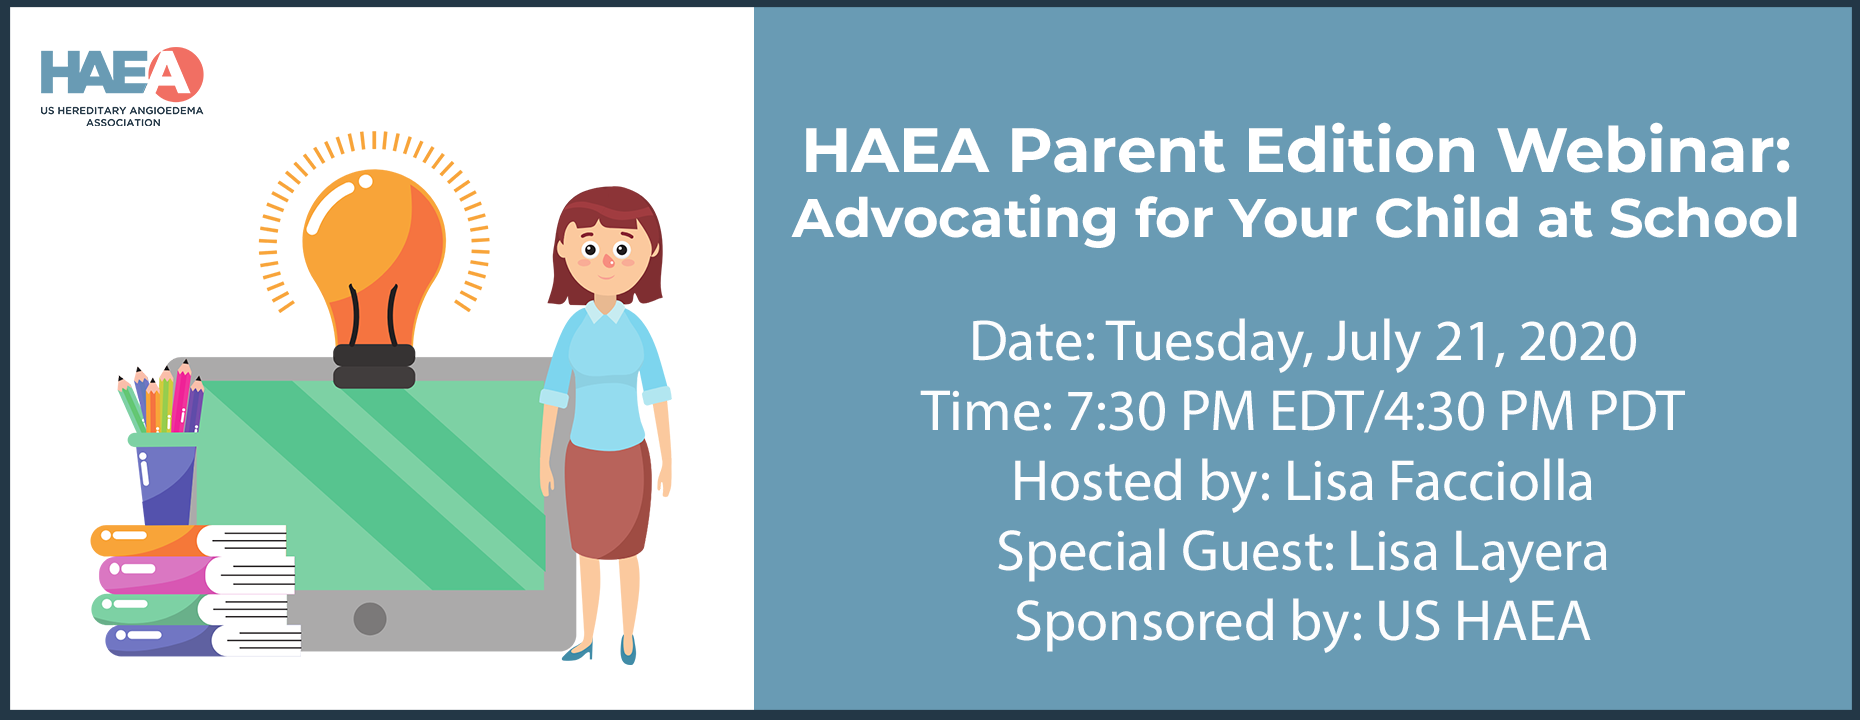 HAEA Parent Edition Webinar: Advocating for Your Child at School